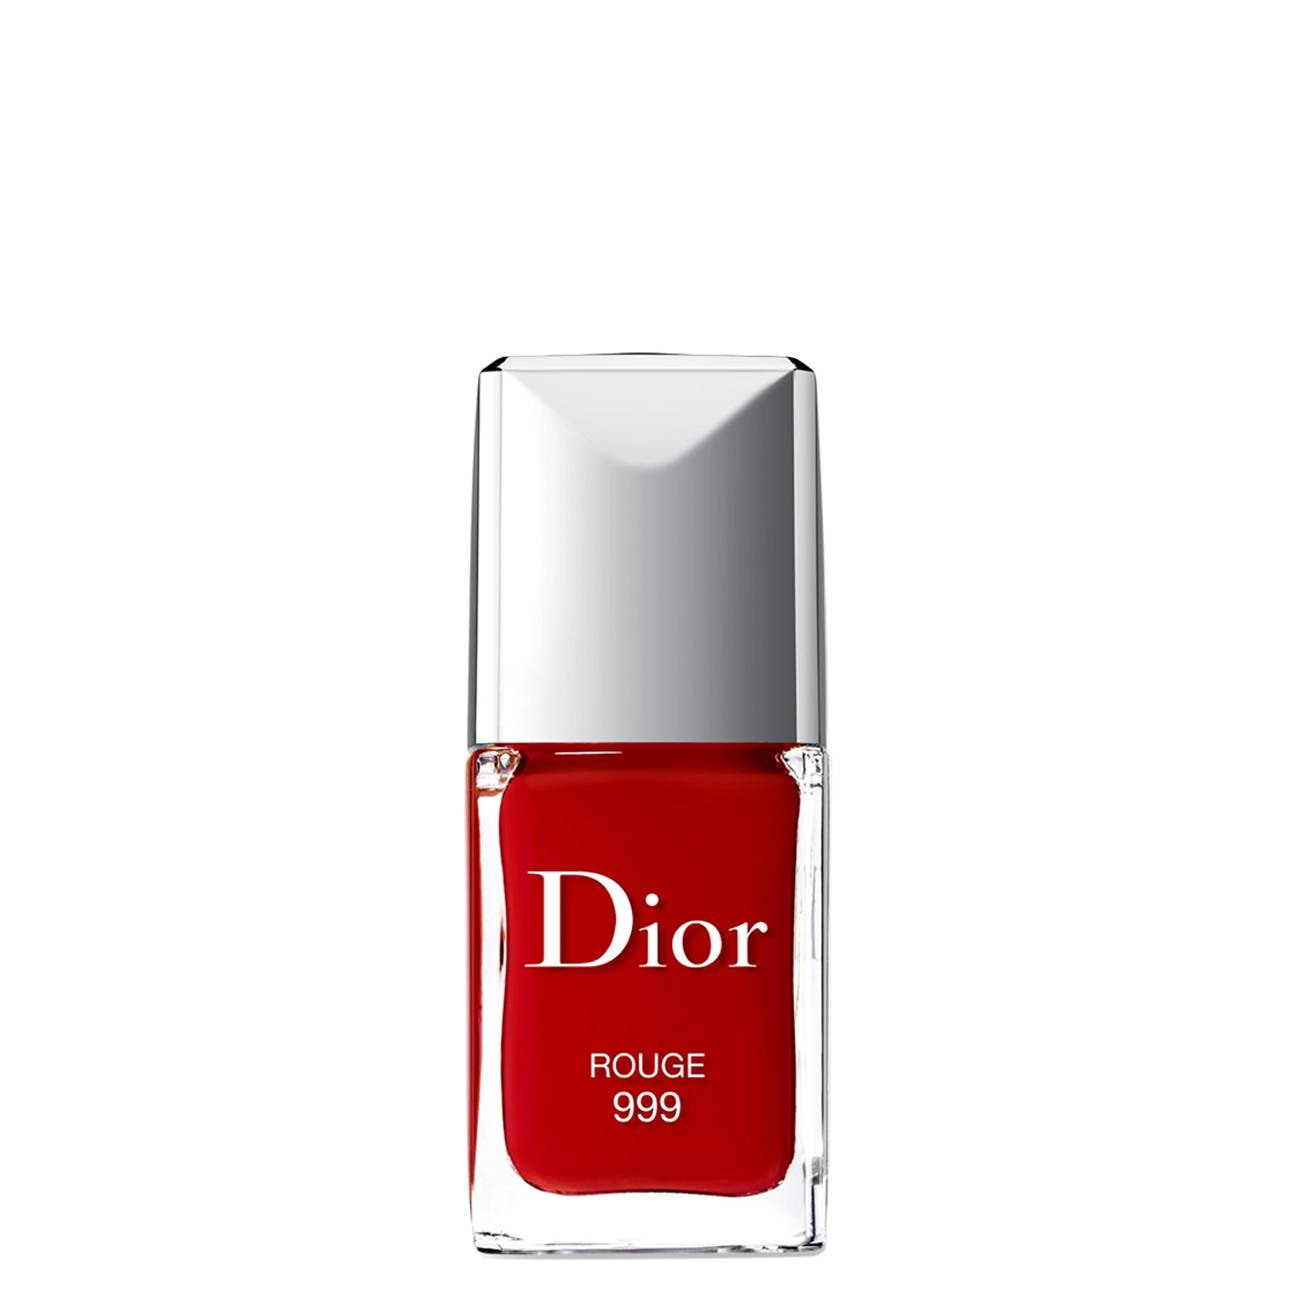 Vernis 999 10 Ml Dior imagine 2021 bestvalue.eu